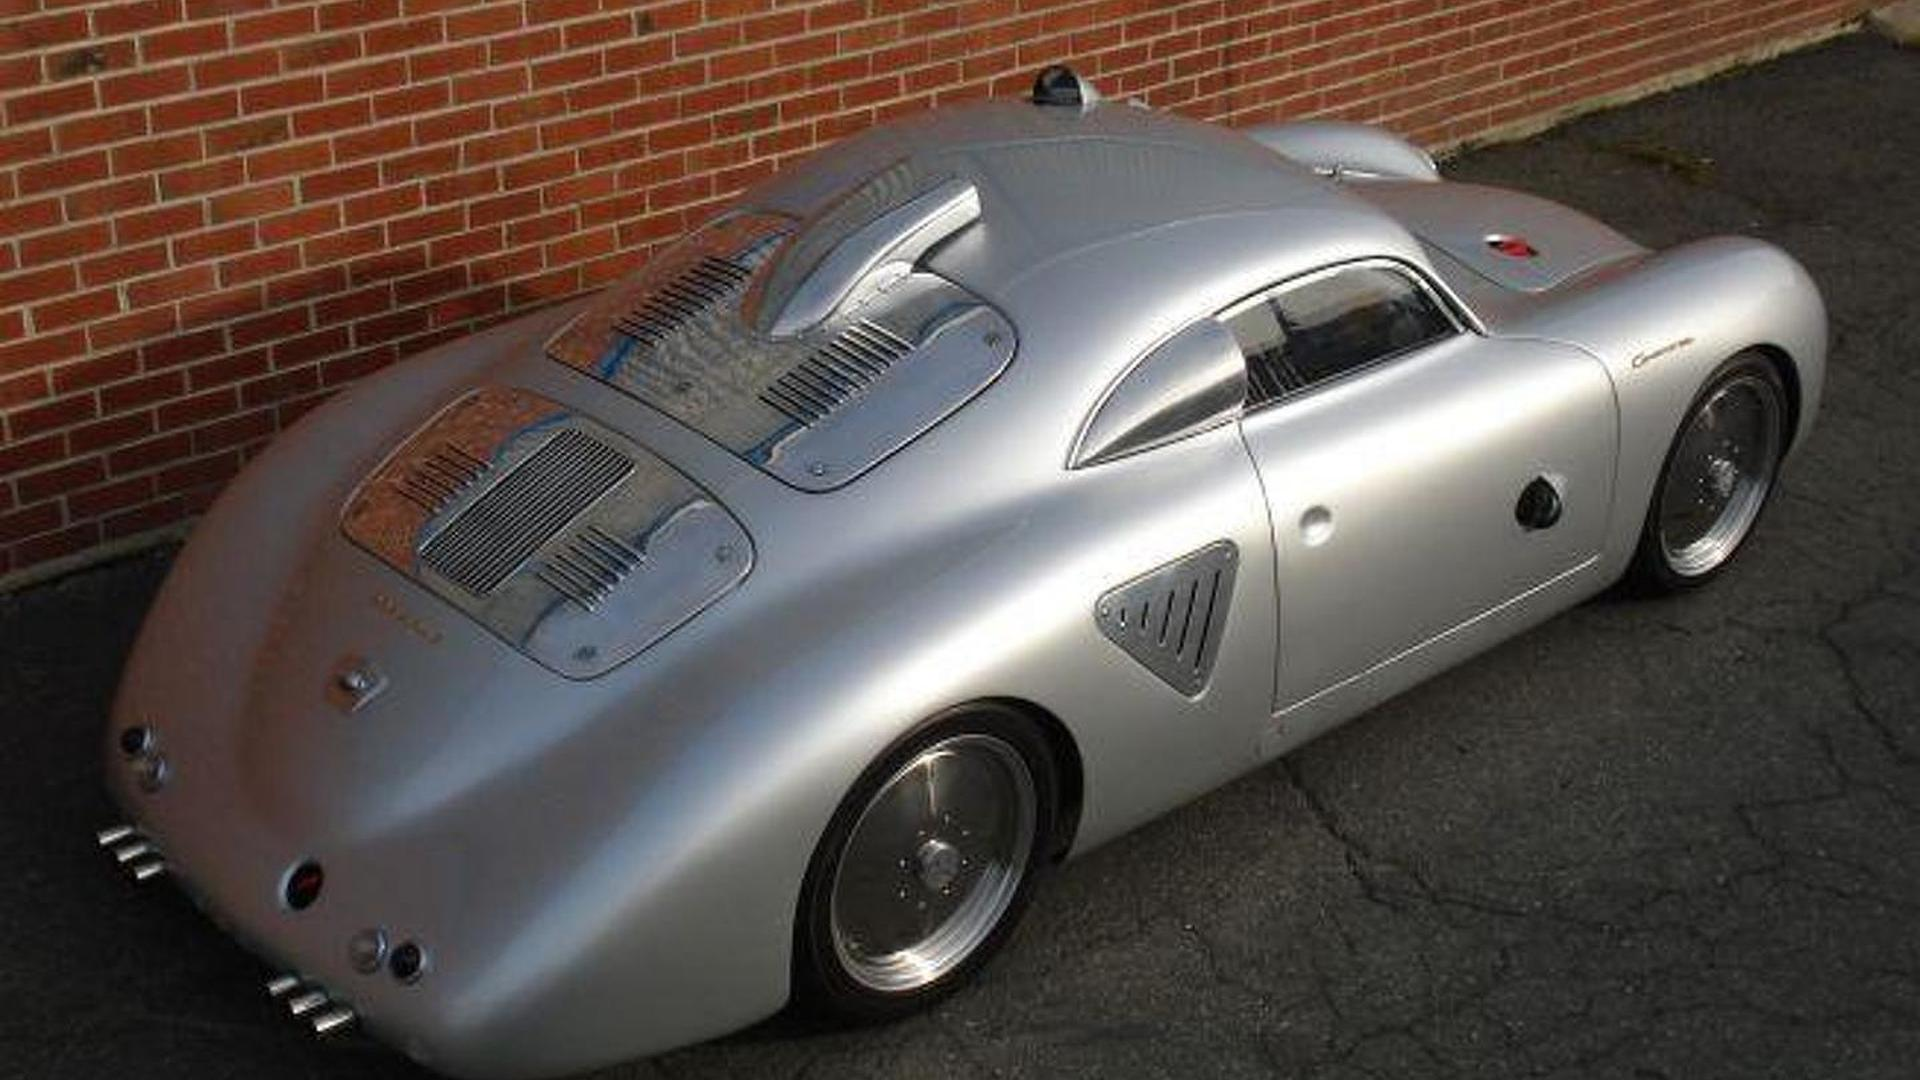 356 Silver Bullet Hot Rod is truly unique